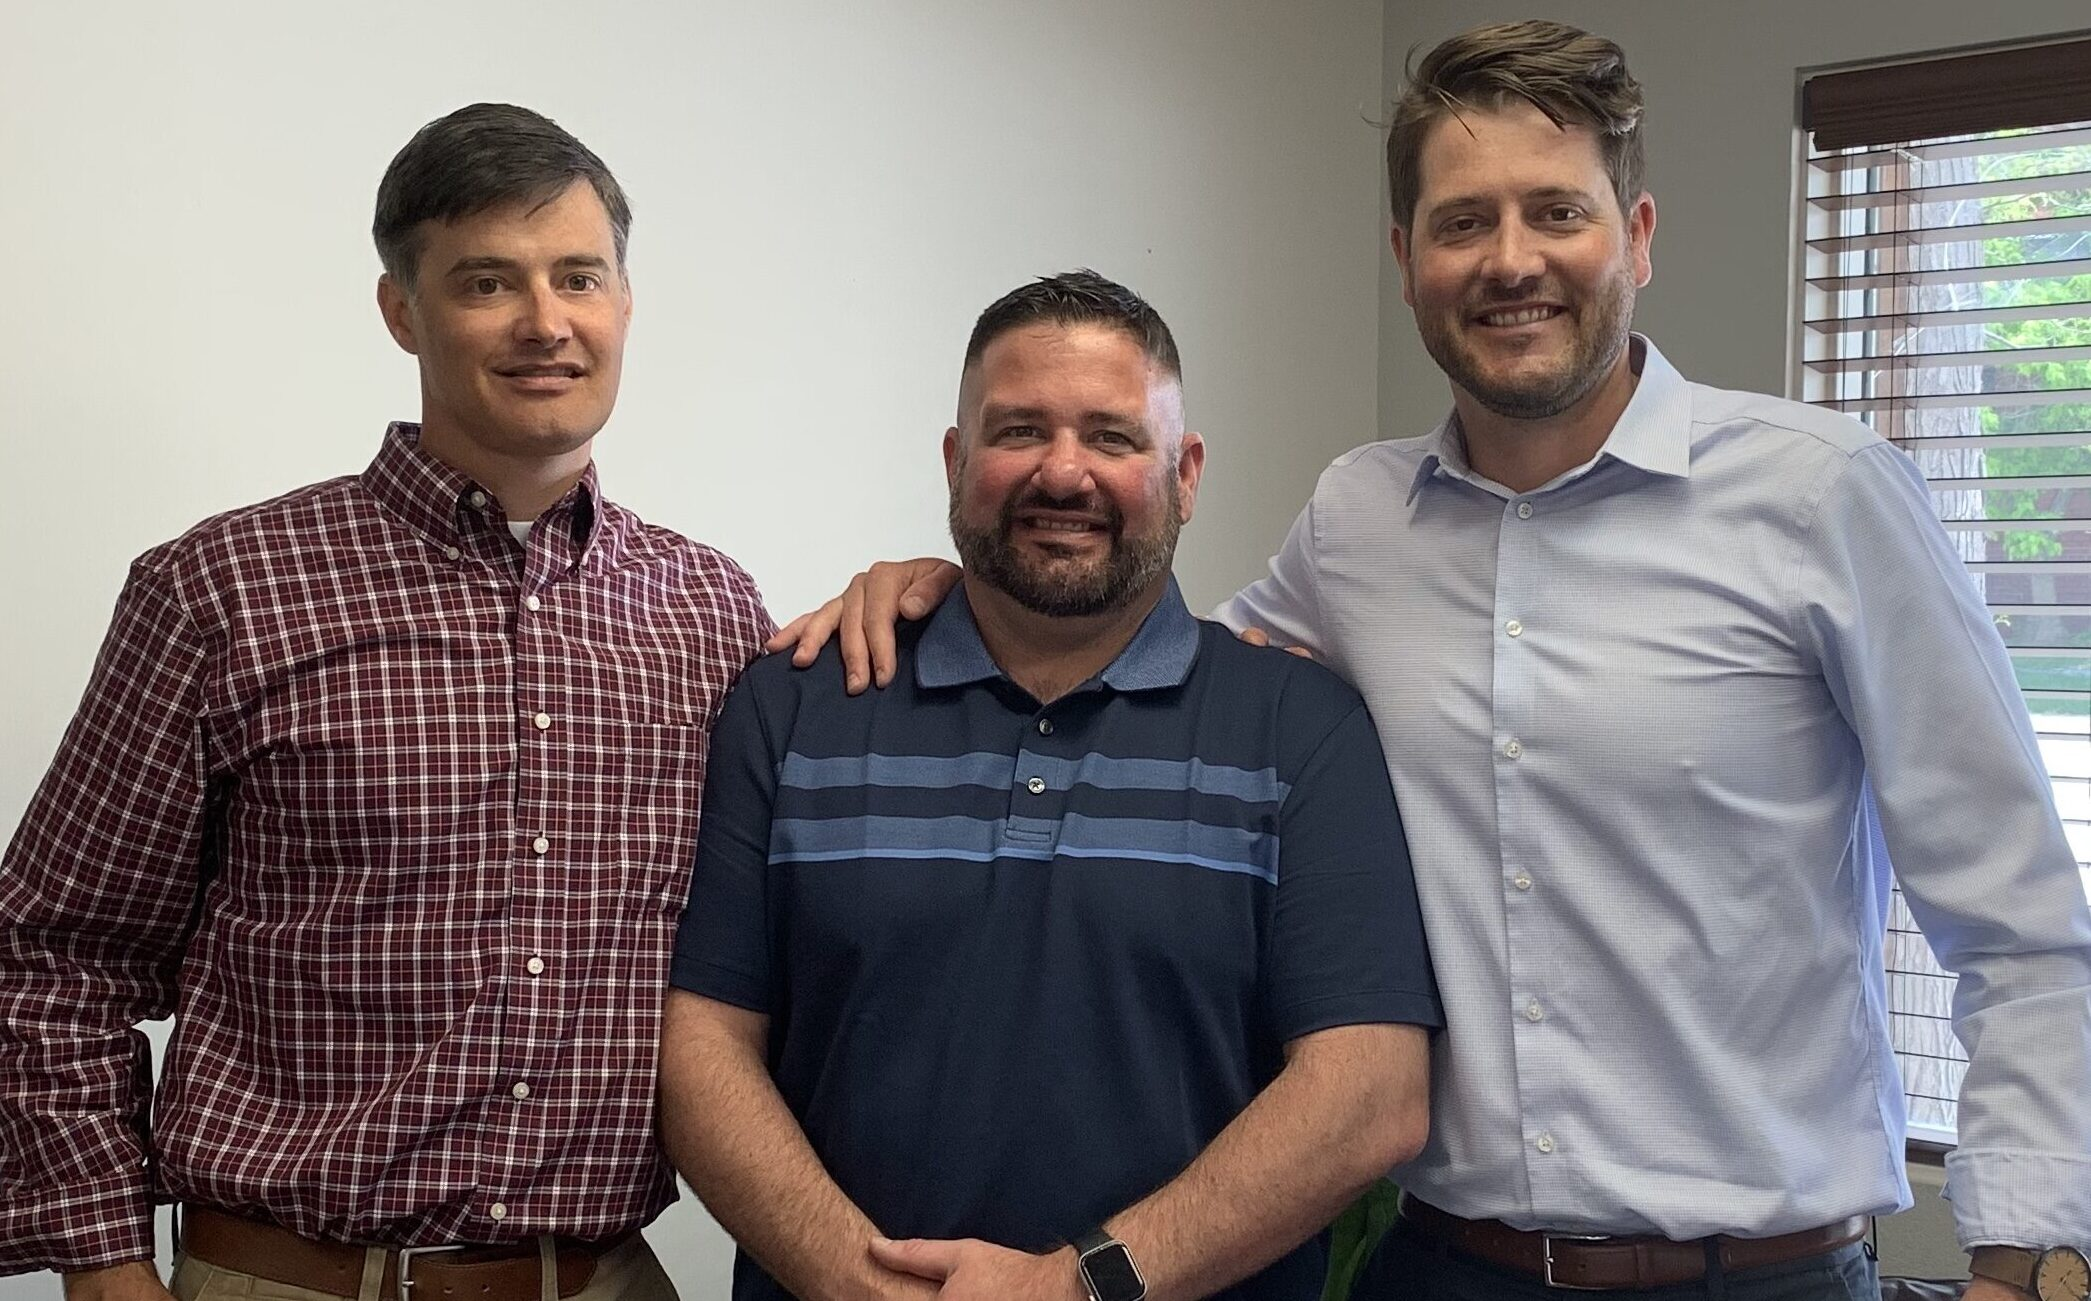 The three brothers who founded JB Engineers: Adam Jung (left), Jared Jung (middle), Mathias Jung (right)